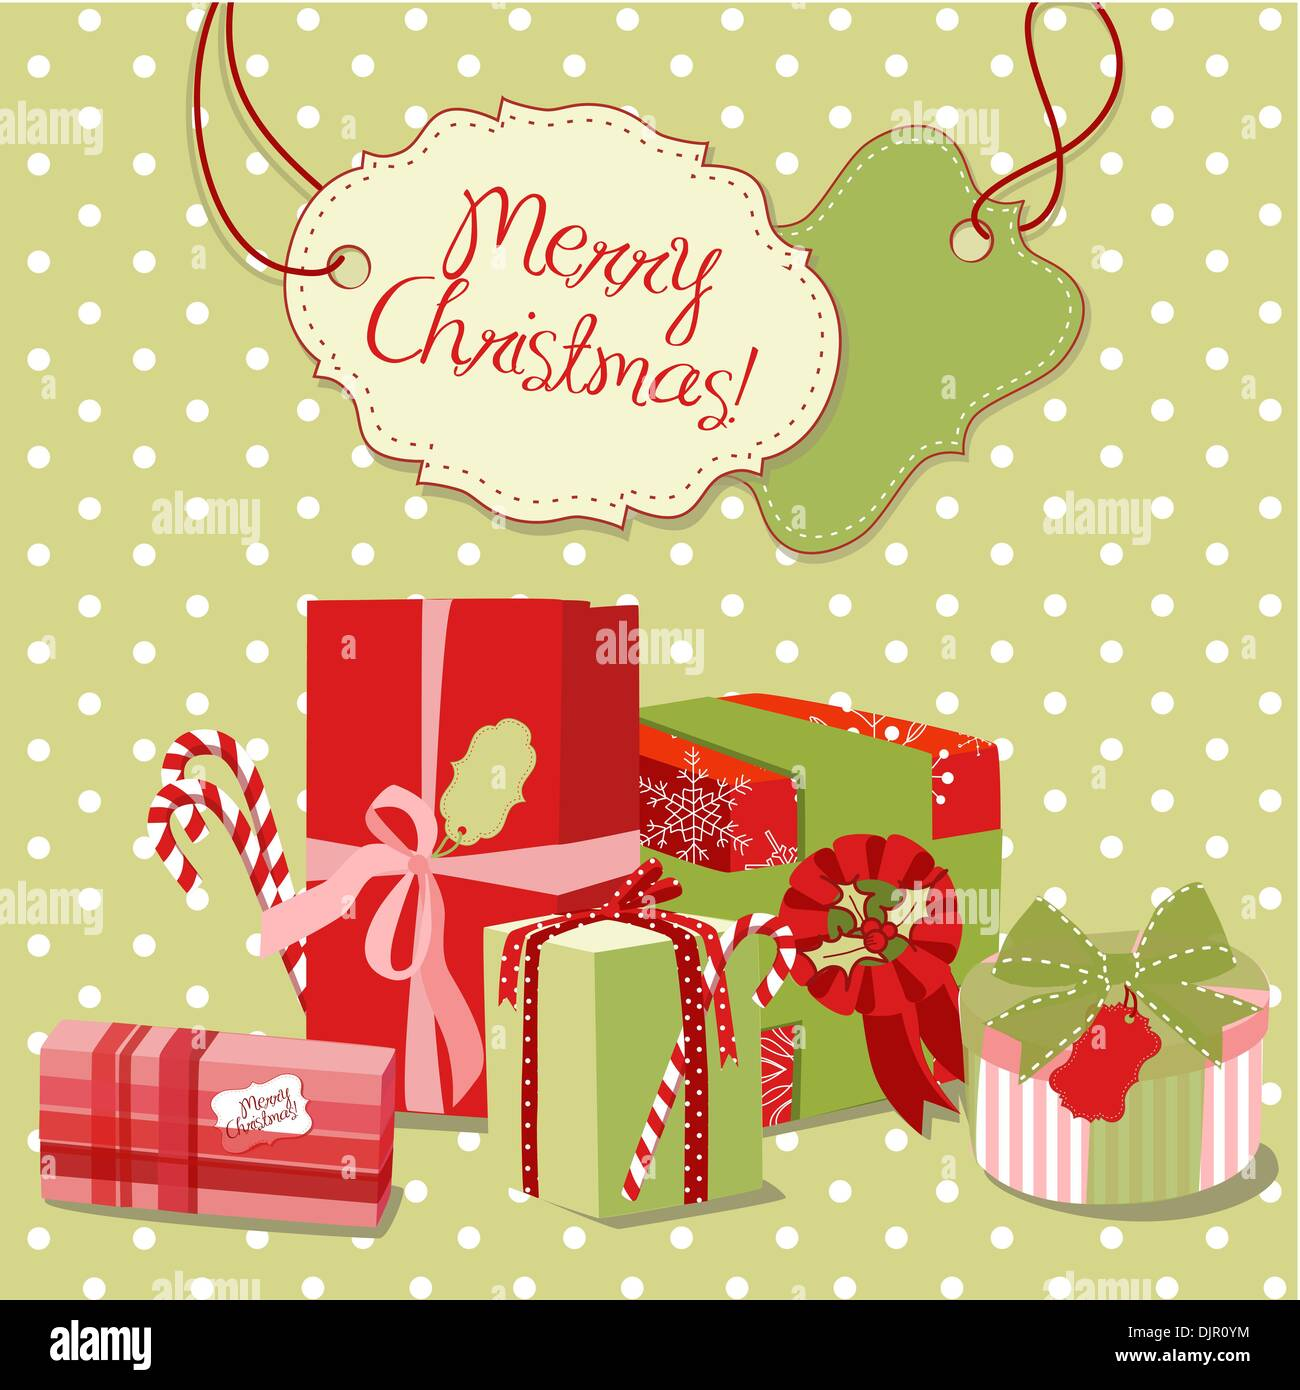 clip art christmas bells stockfotos clip art christmas bells bilder alamy. Black Bedroom Furniture Sets. Home Design Ideas